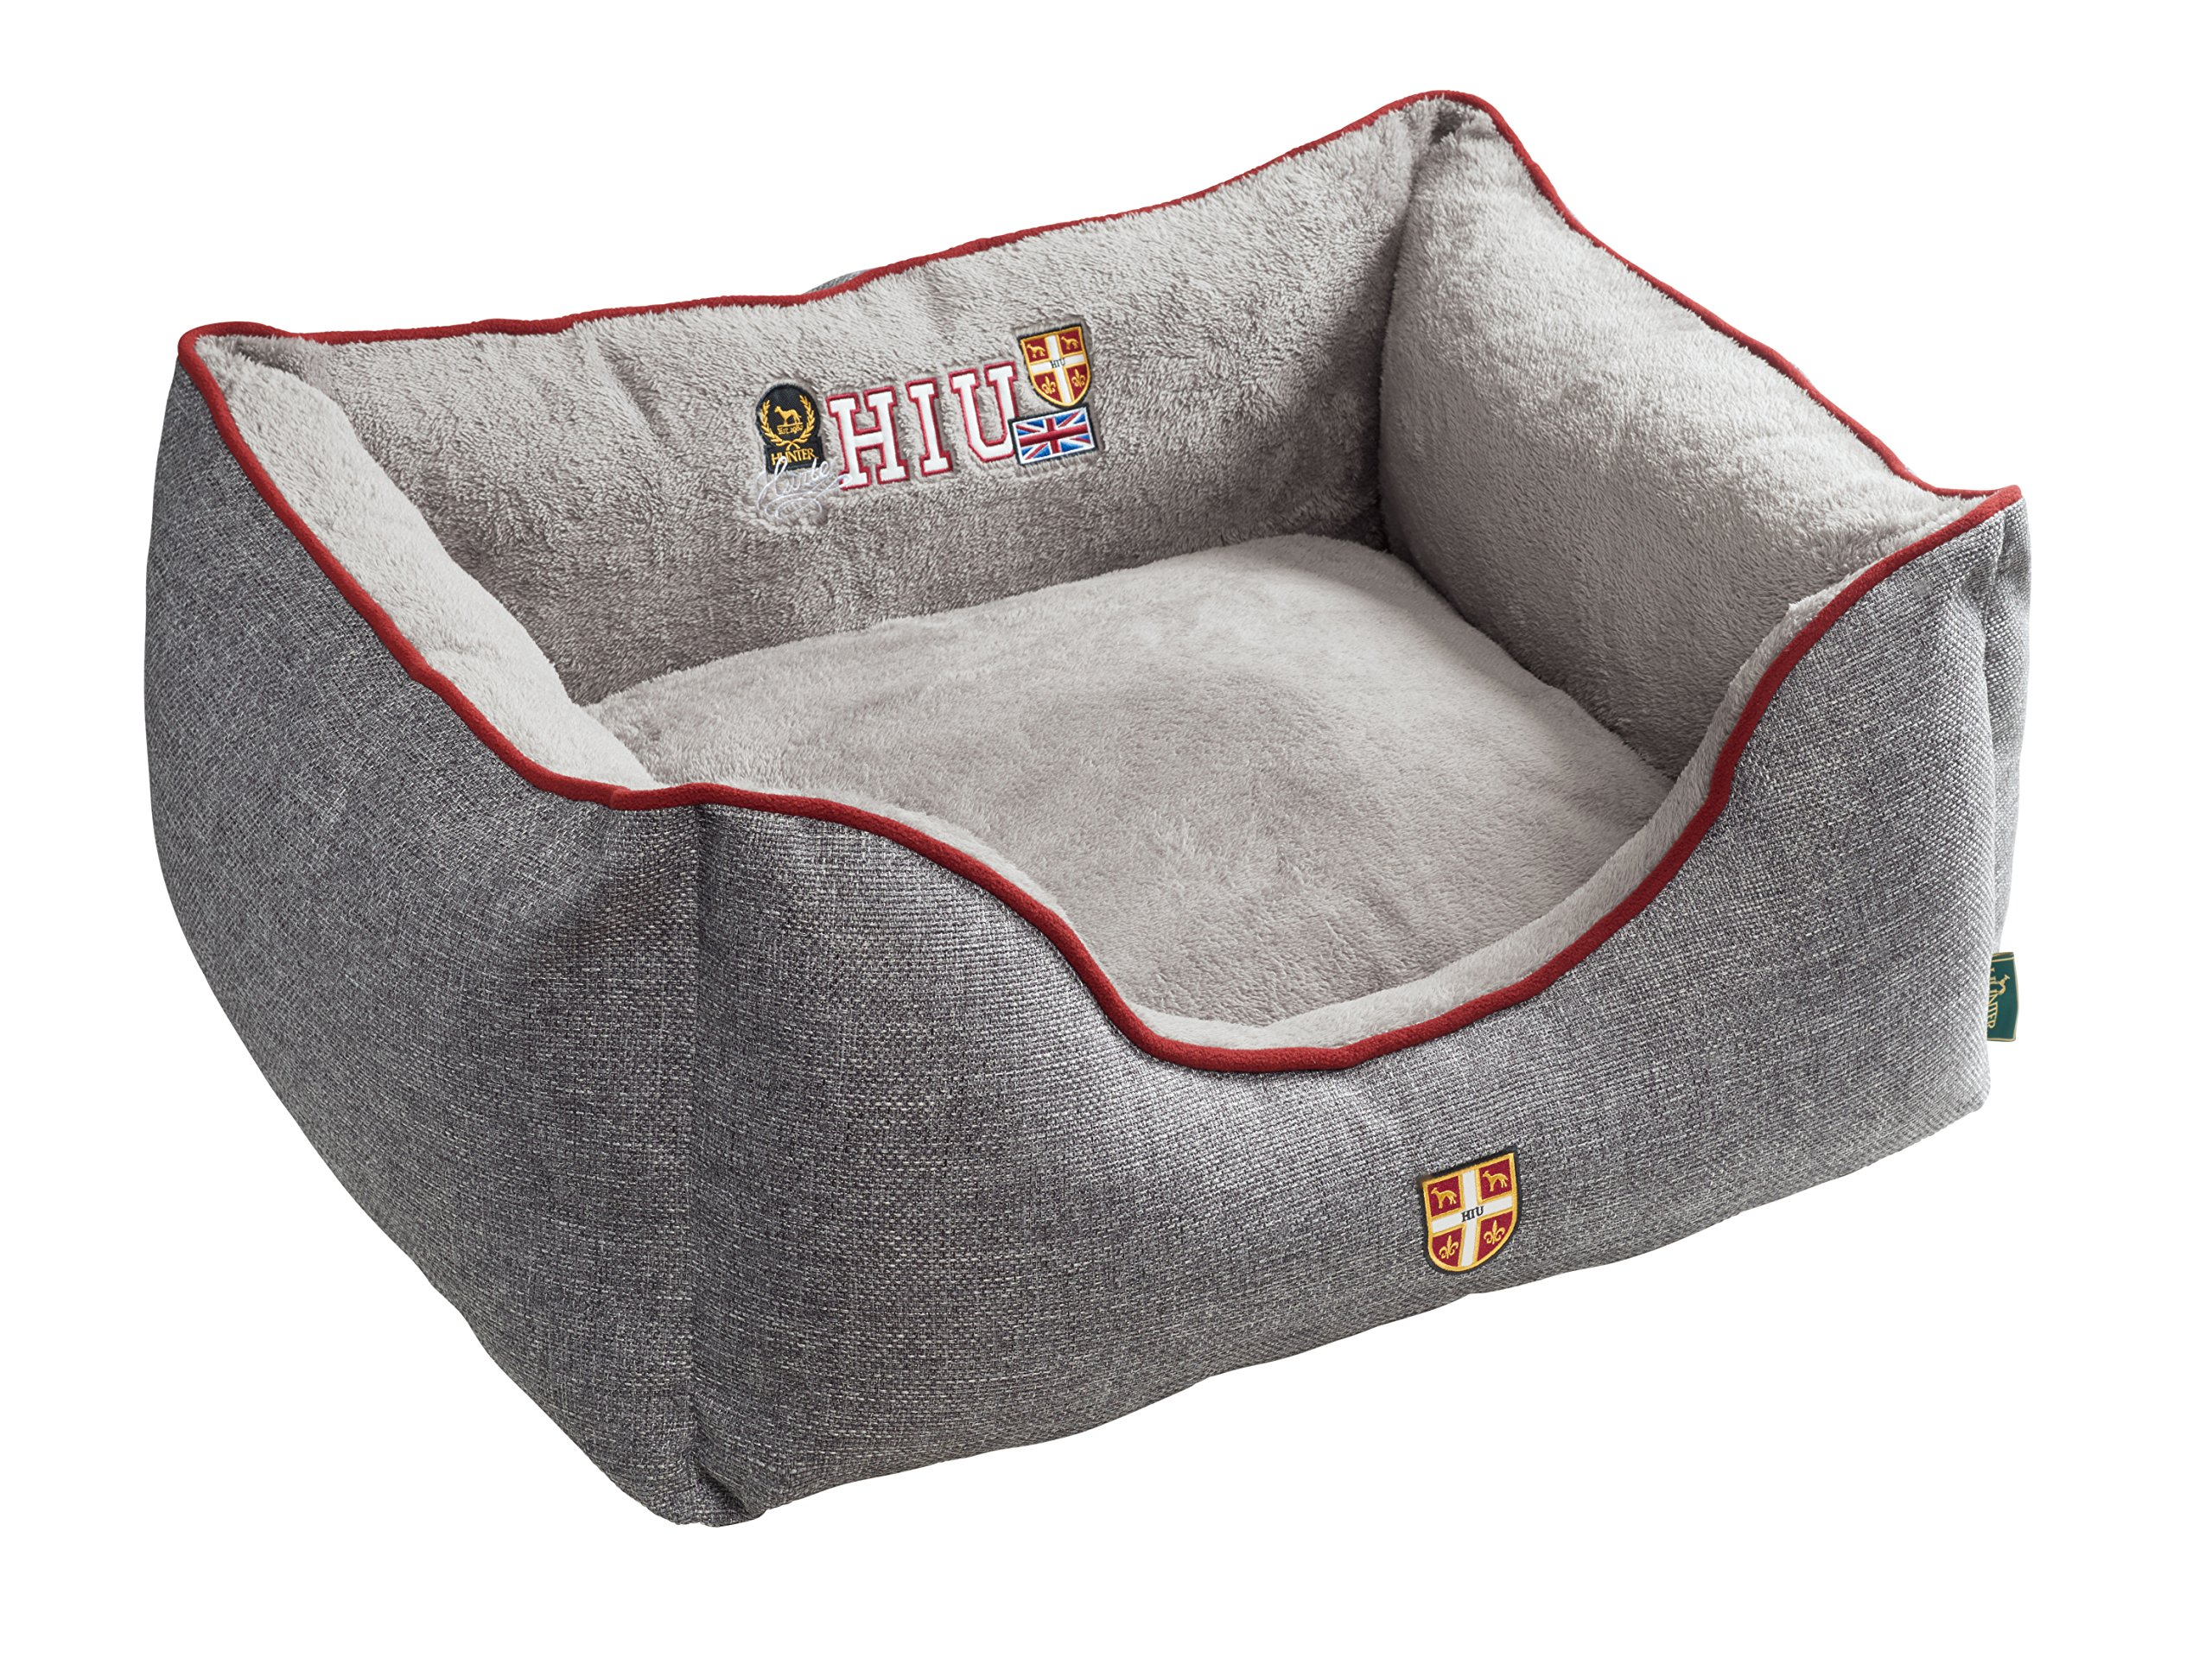 hunter Dog Sofa University, Small, 60 x 45 cm, Grey